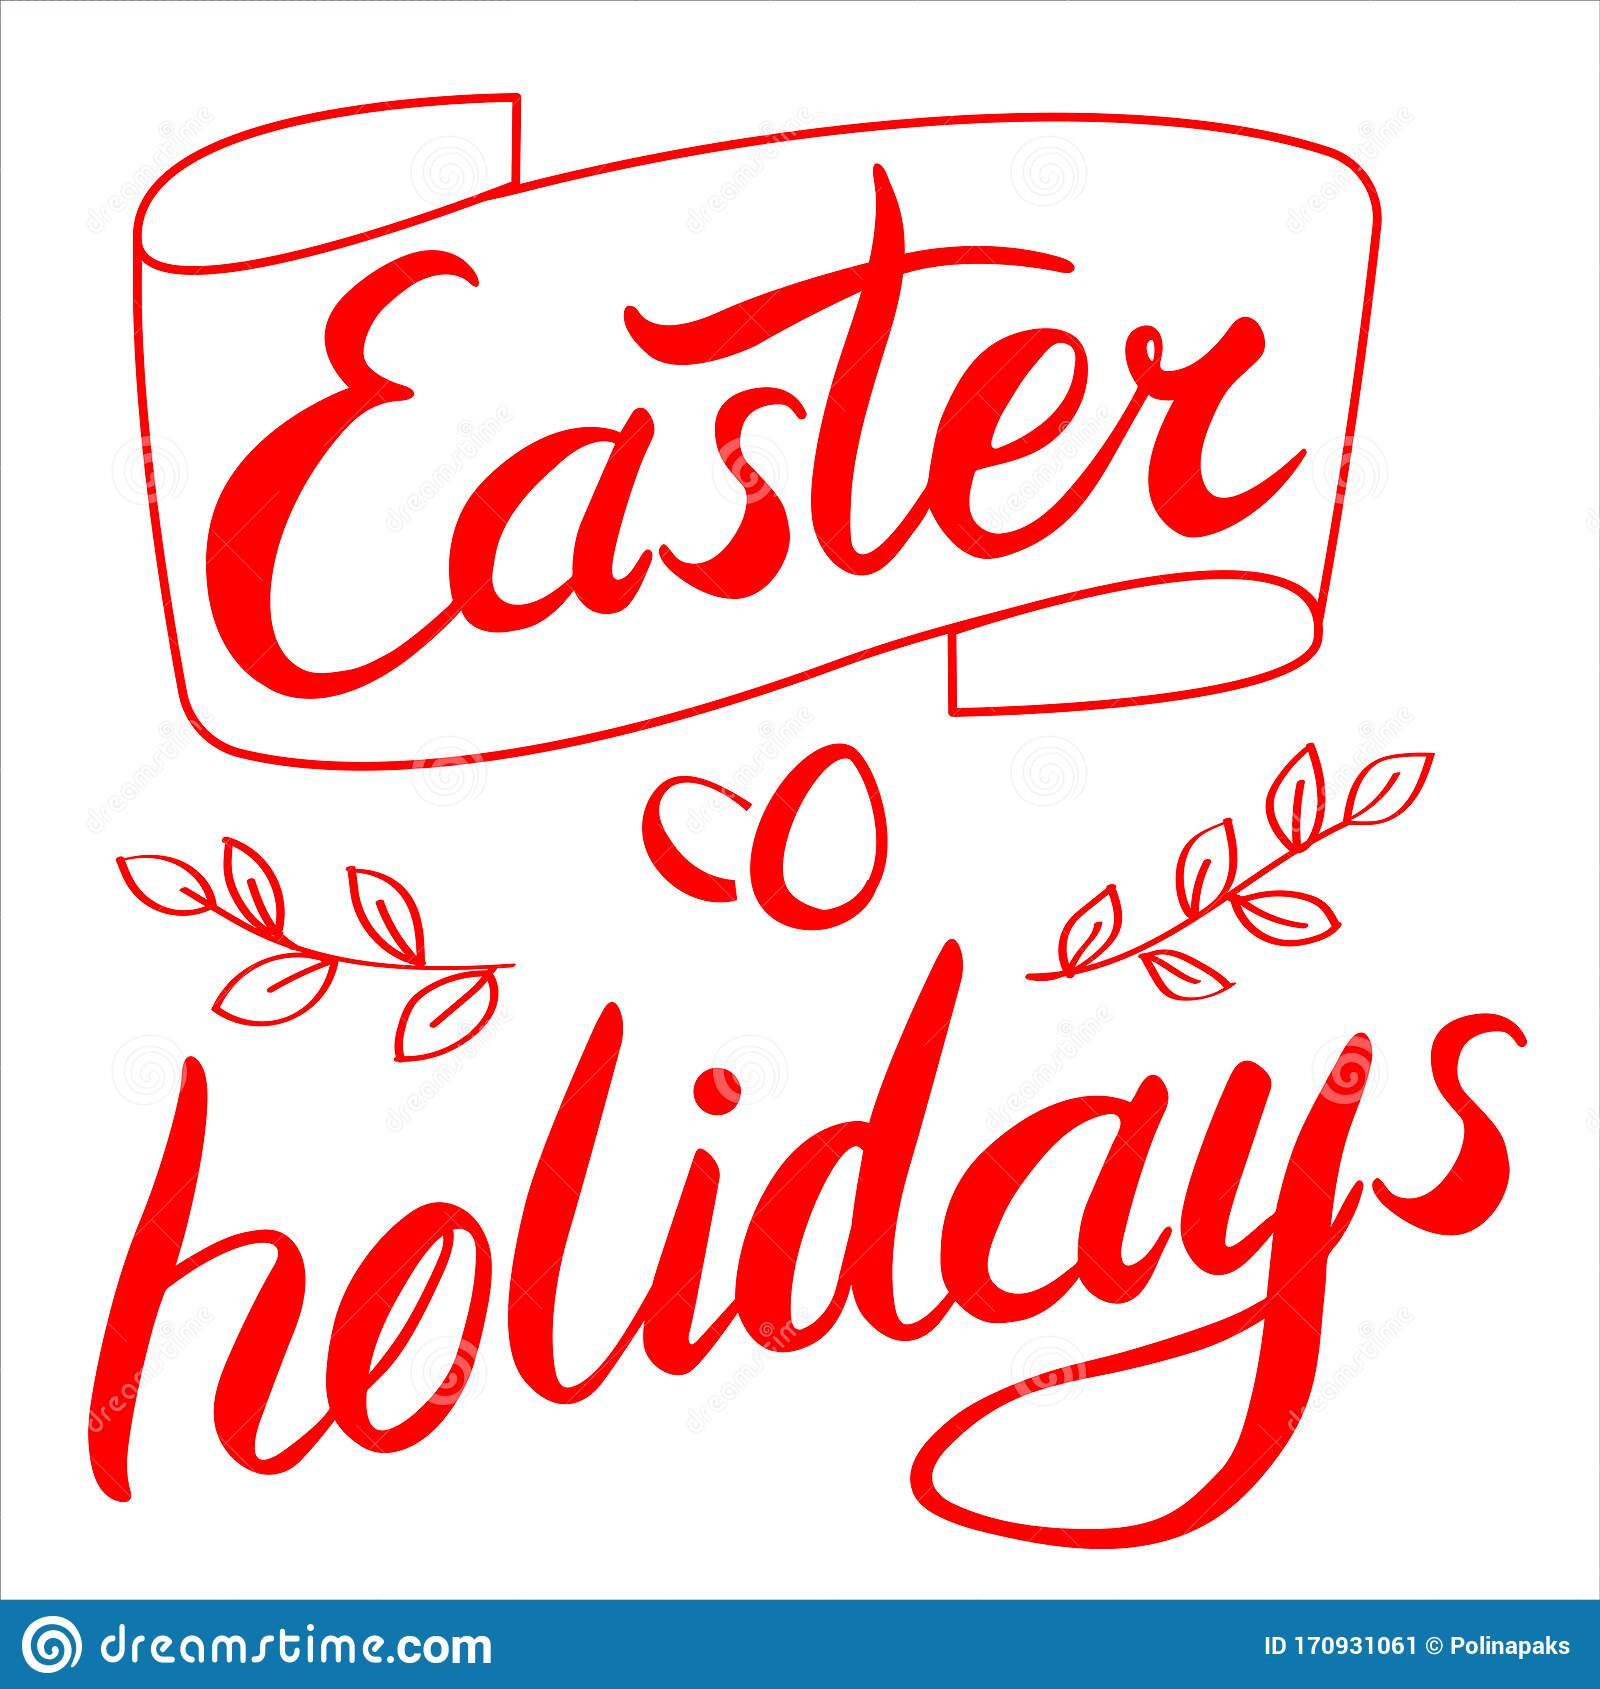 Easter Holidays Title Lettering Bright Red Handwriting